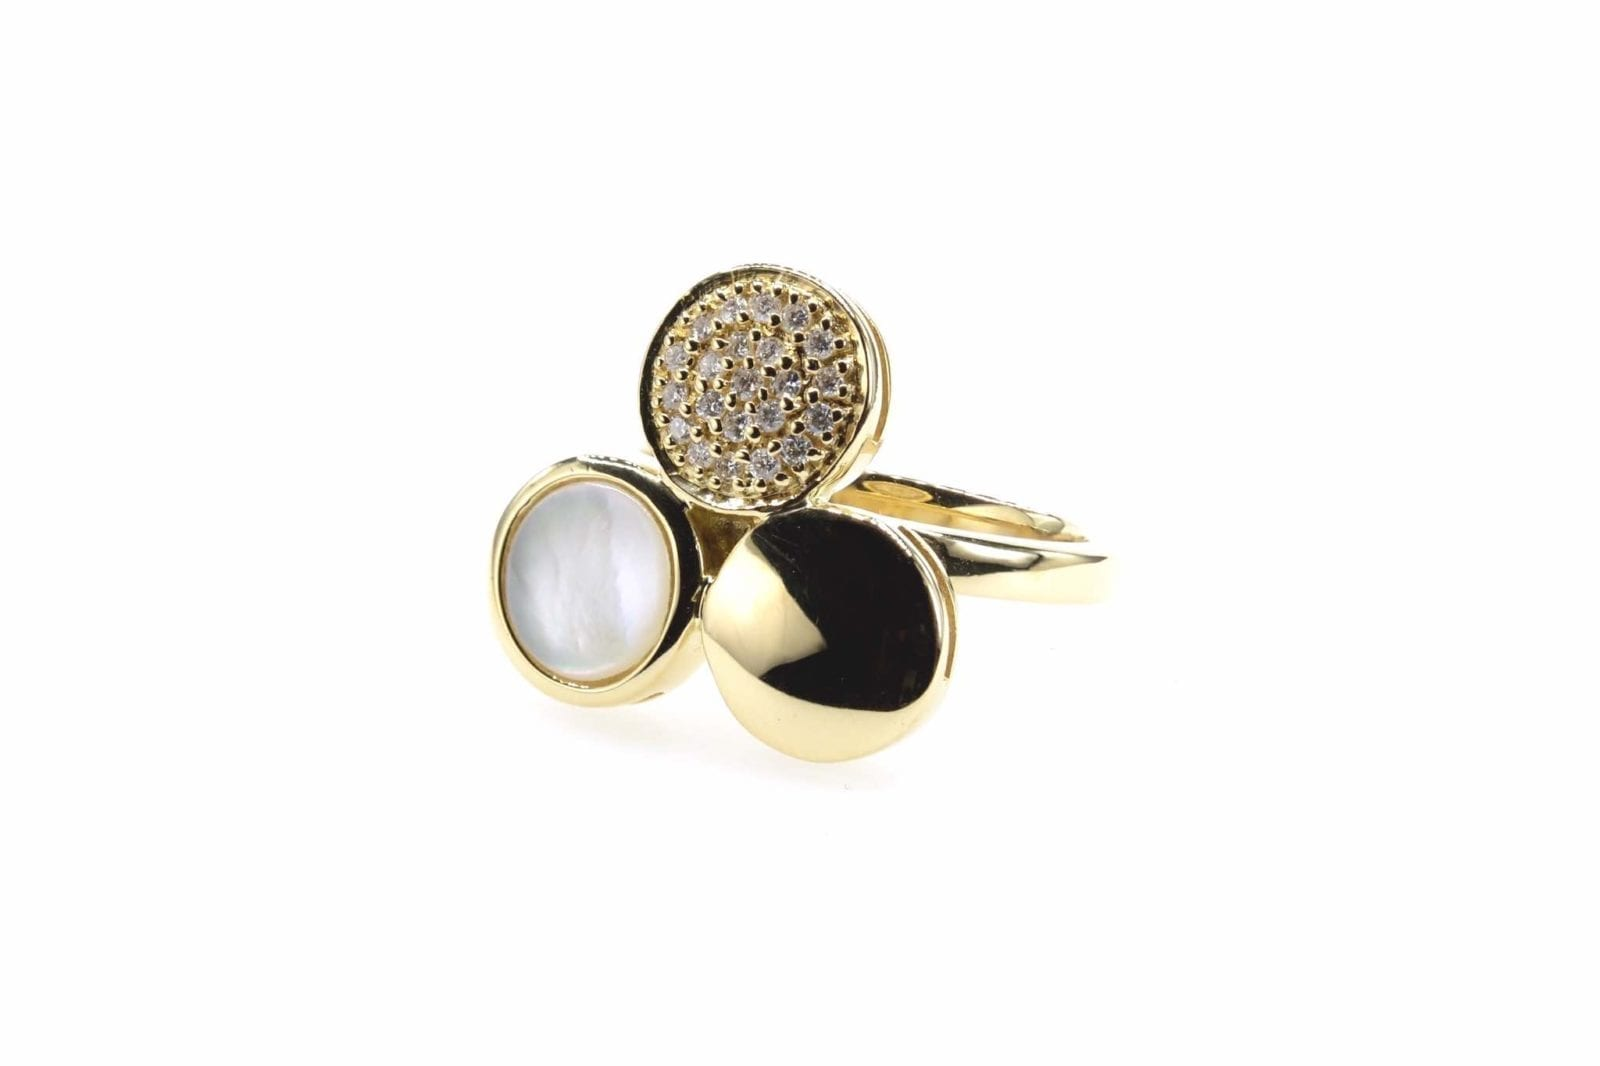 Bague nacre et diamants en or jaune 18k